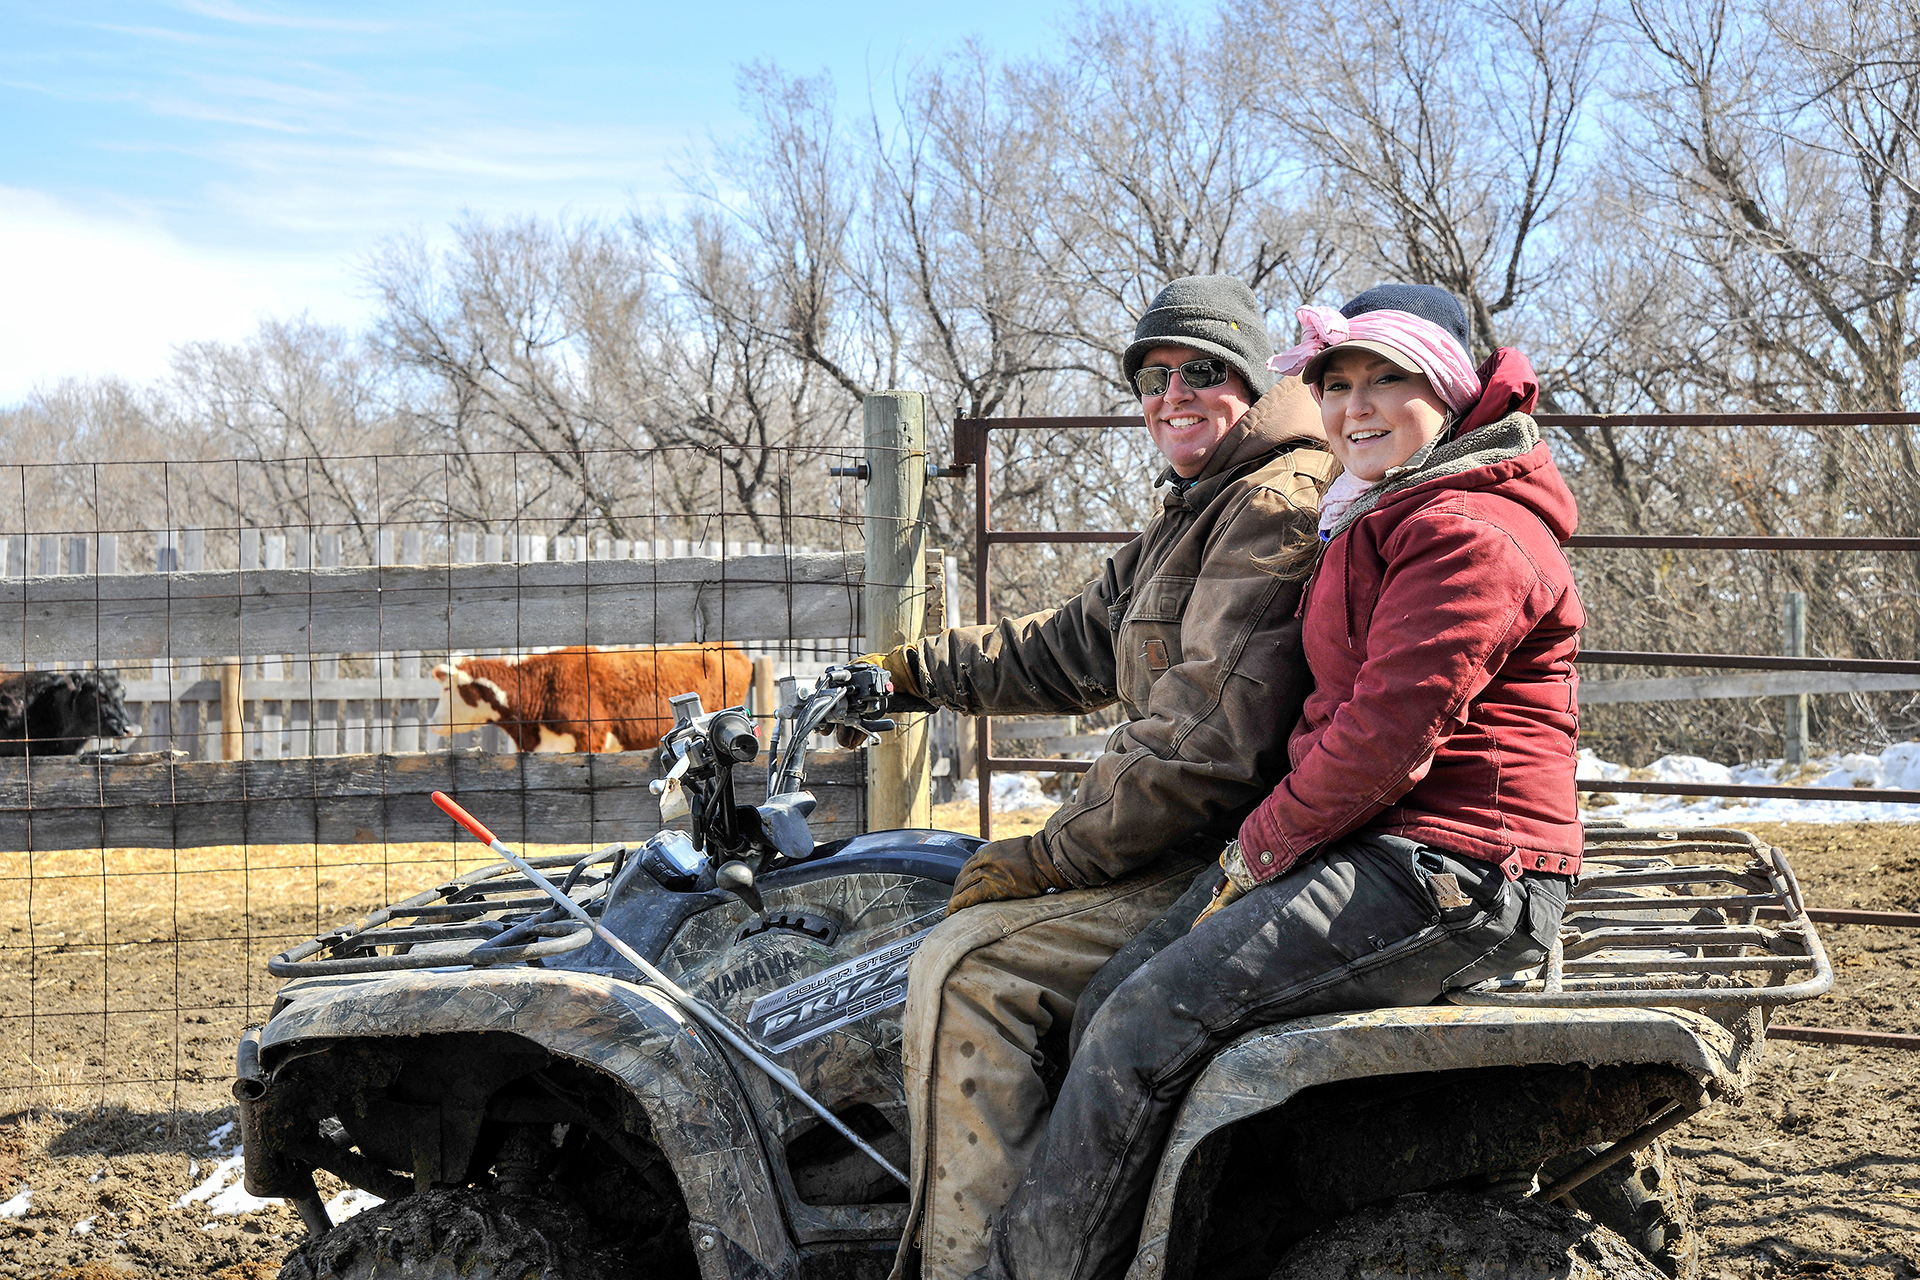 Arnal and her fiancé, Leigh Bircham, check on some cows.